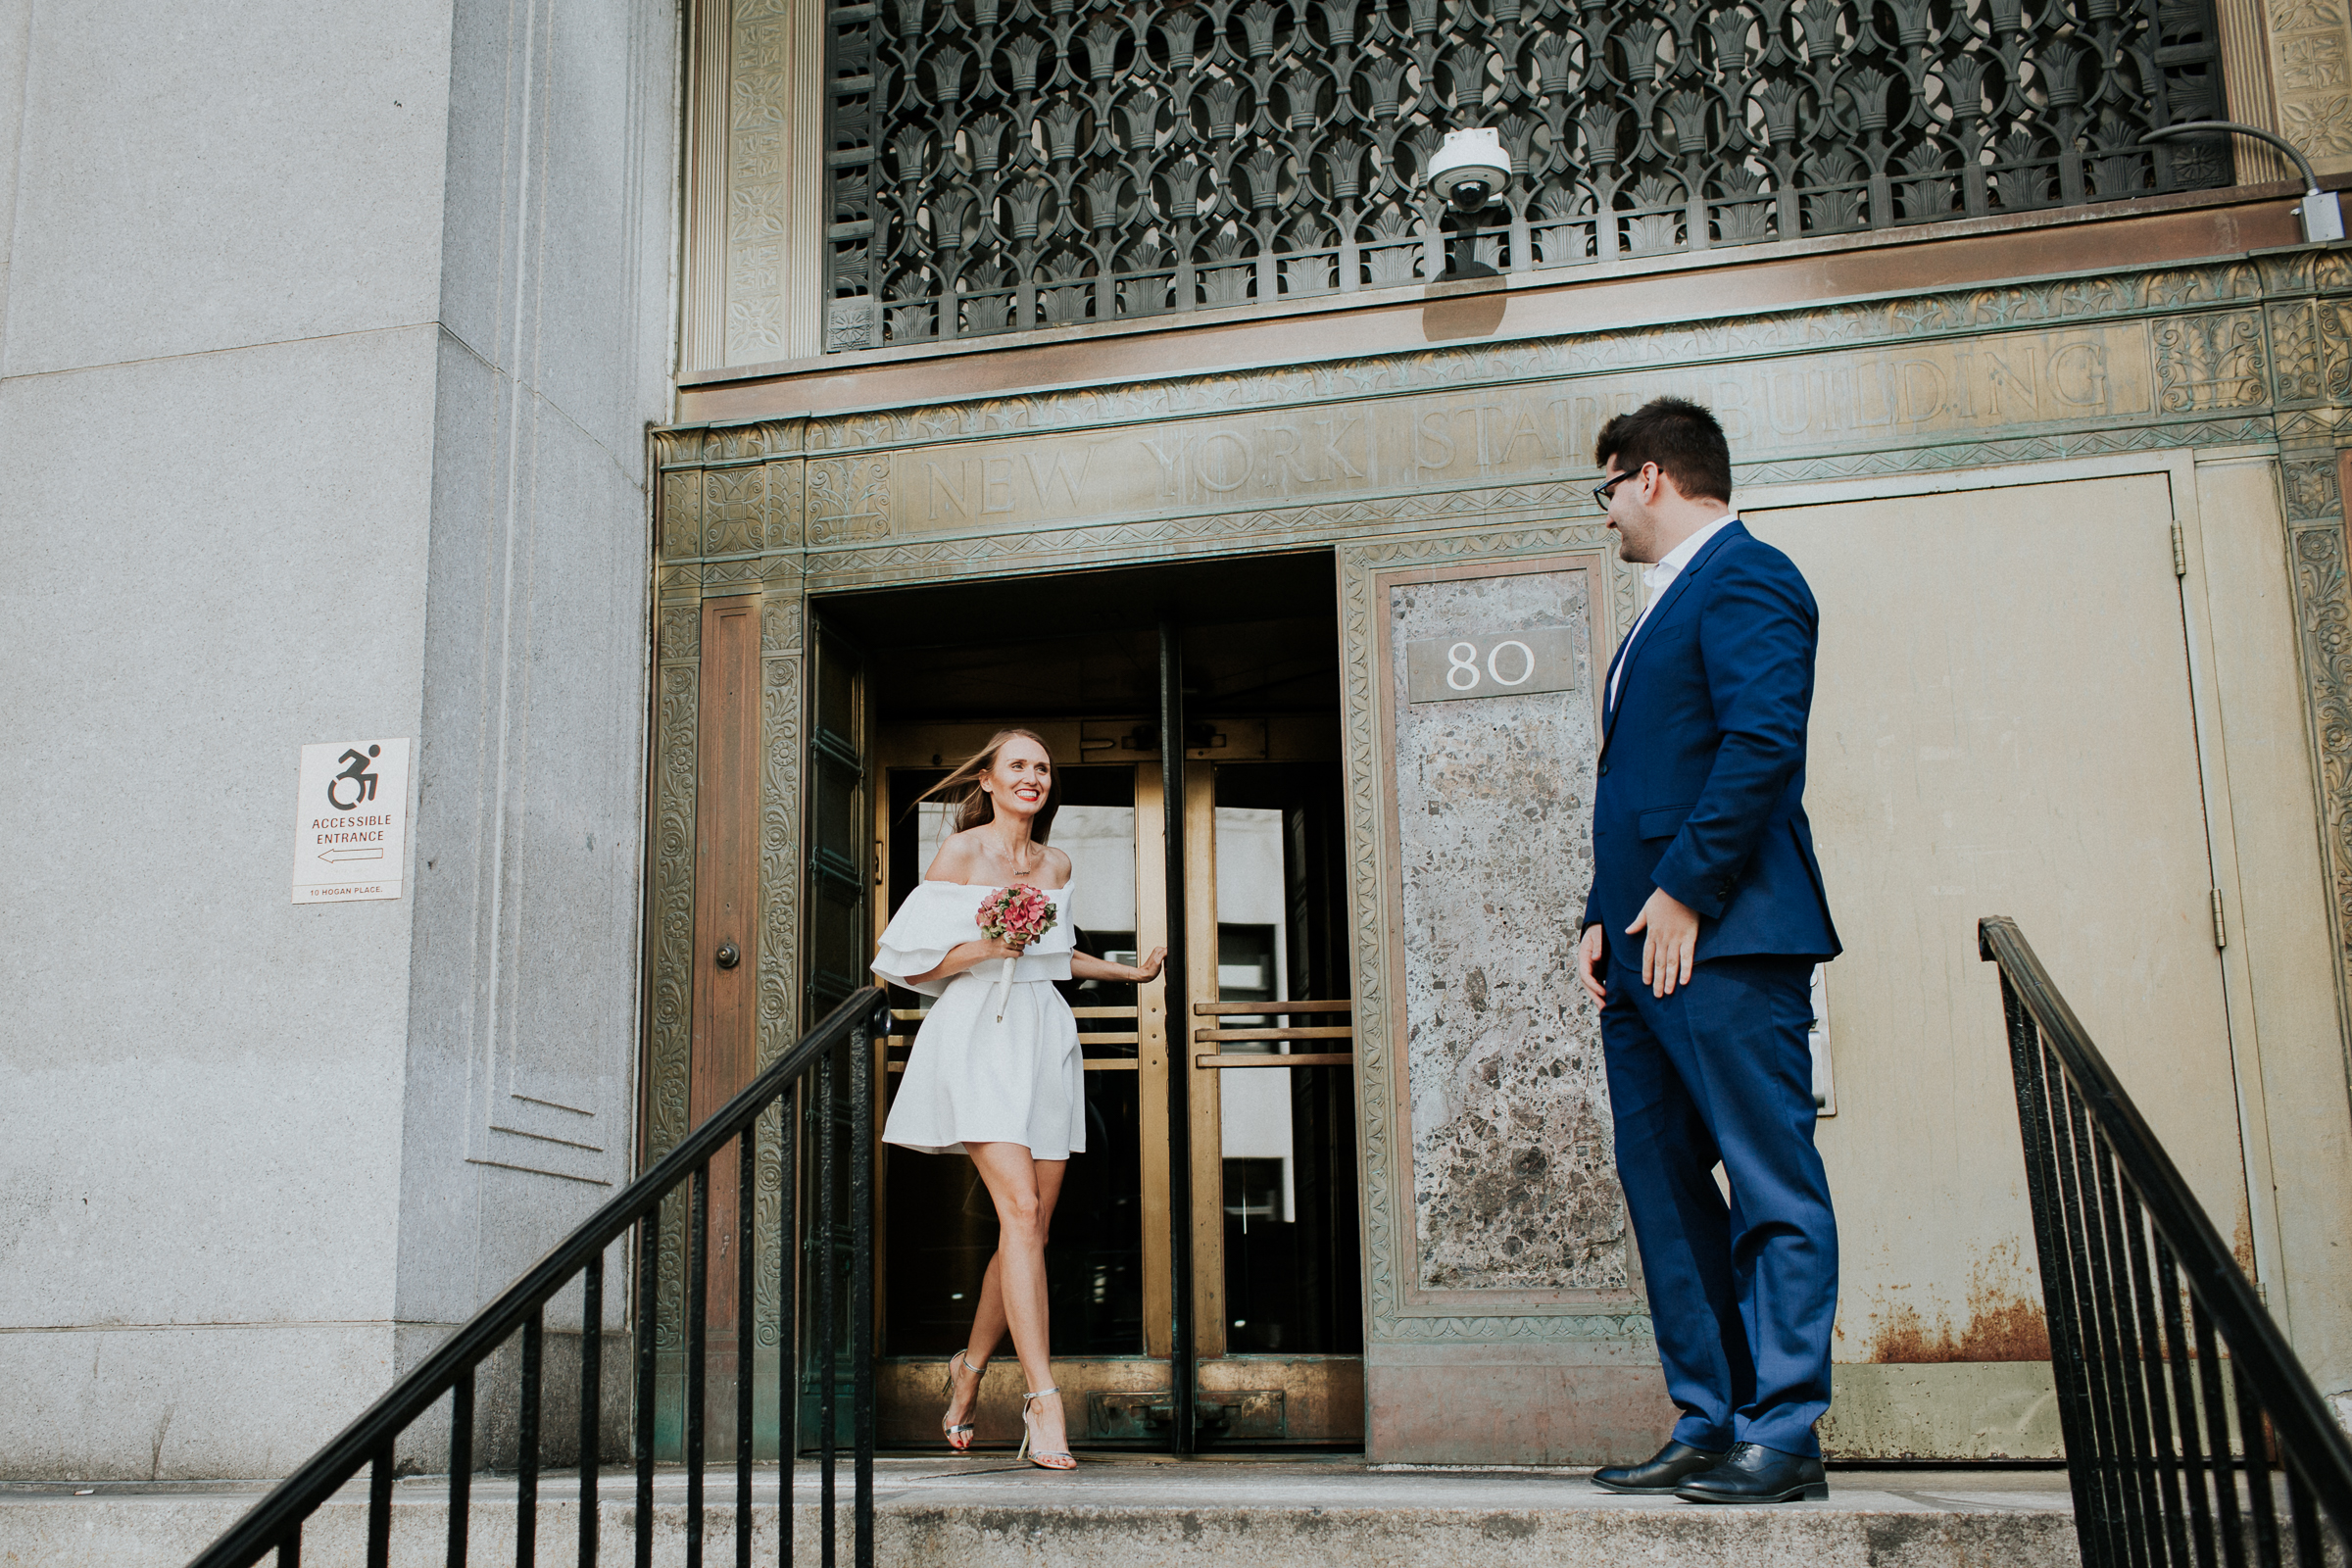 New-York-City-Hall-Elopement-NYC-Documentary-Wedding-Photographer-26.jpg